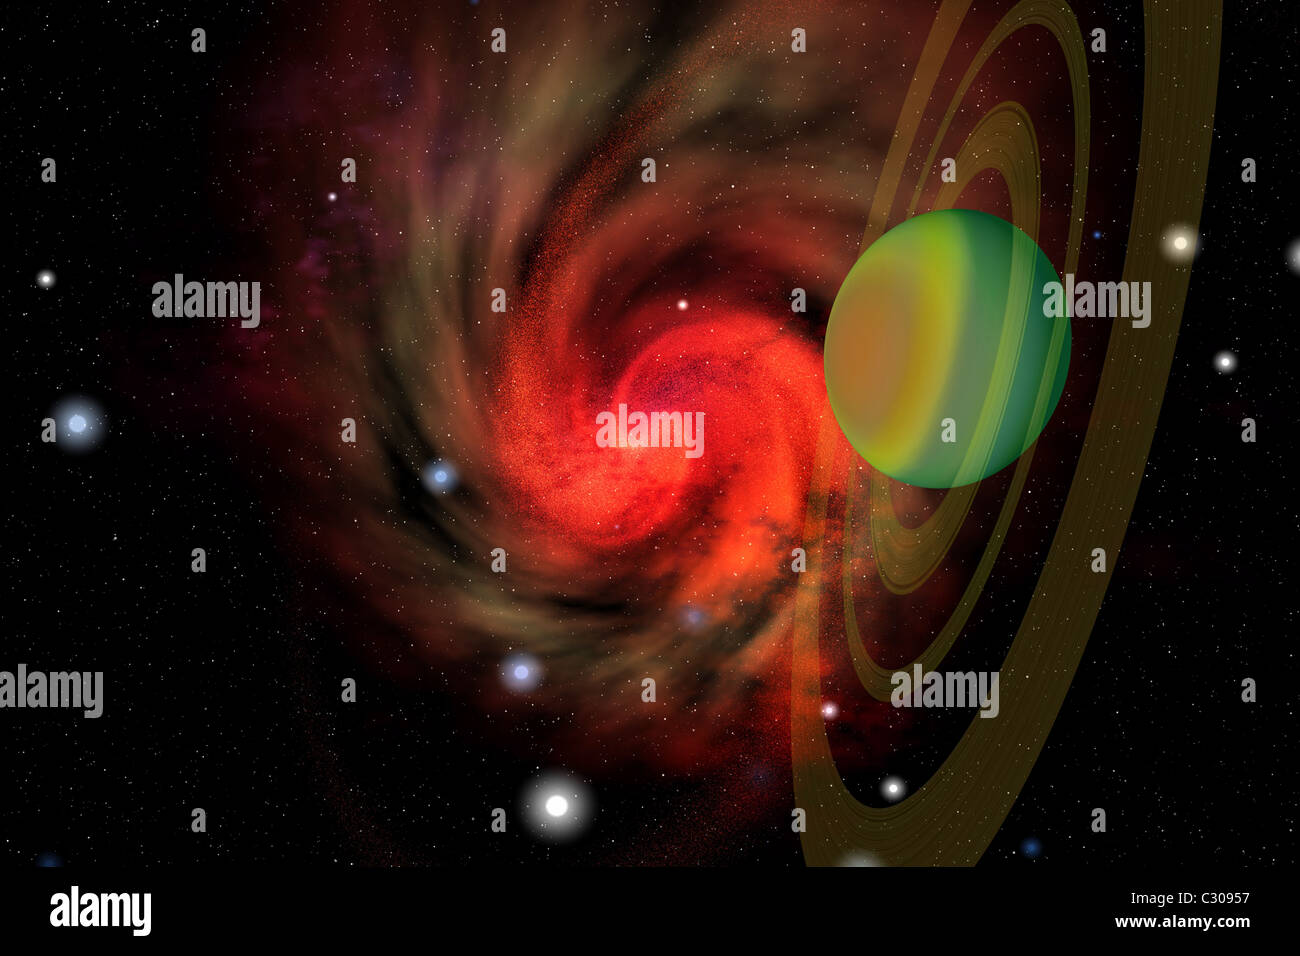 Cosmic image of the universe. - Stock Image